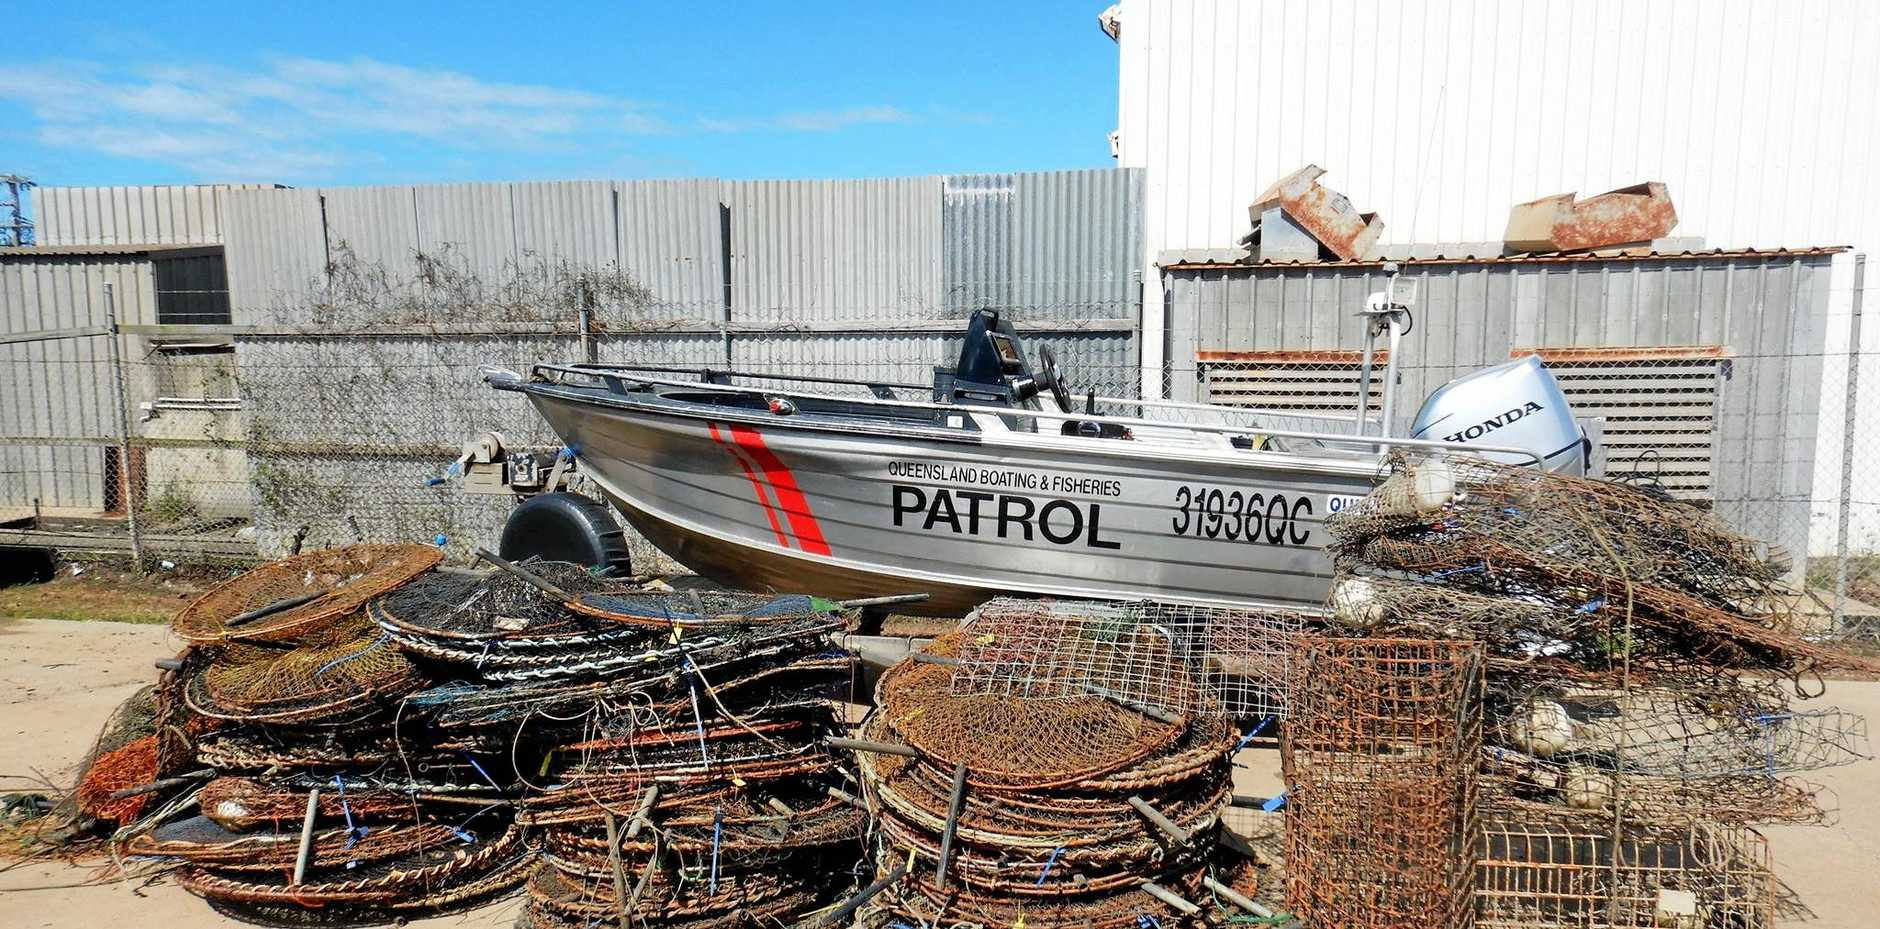 POT PATROL: Fisheries Queensland conducted a four-day operation targeting derelict and unmarked crab apparatus within Mackay's Net Free Zone from Victor Creek, Seaforth to St Helens. This is the staggering result of the officers' hard work.